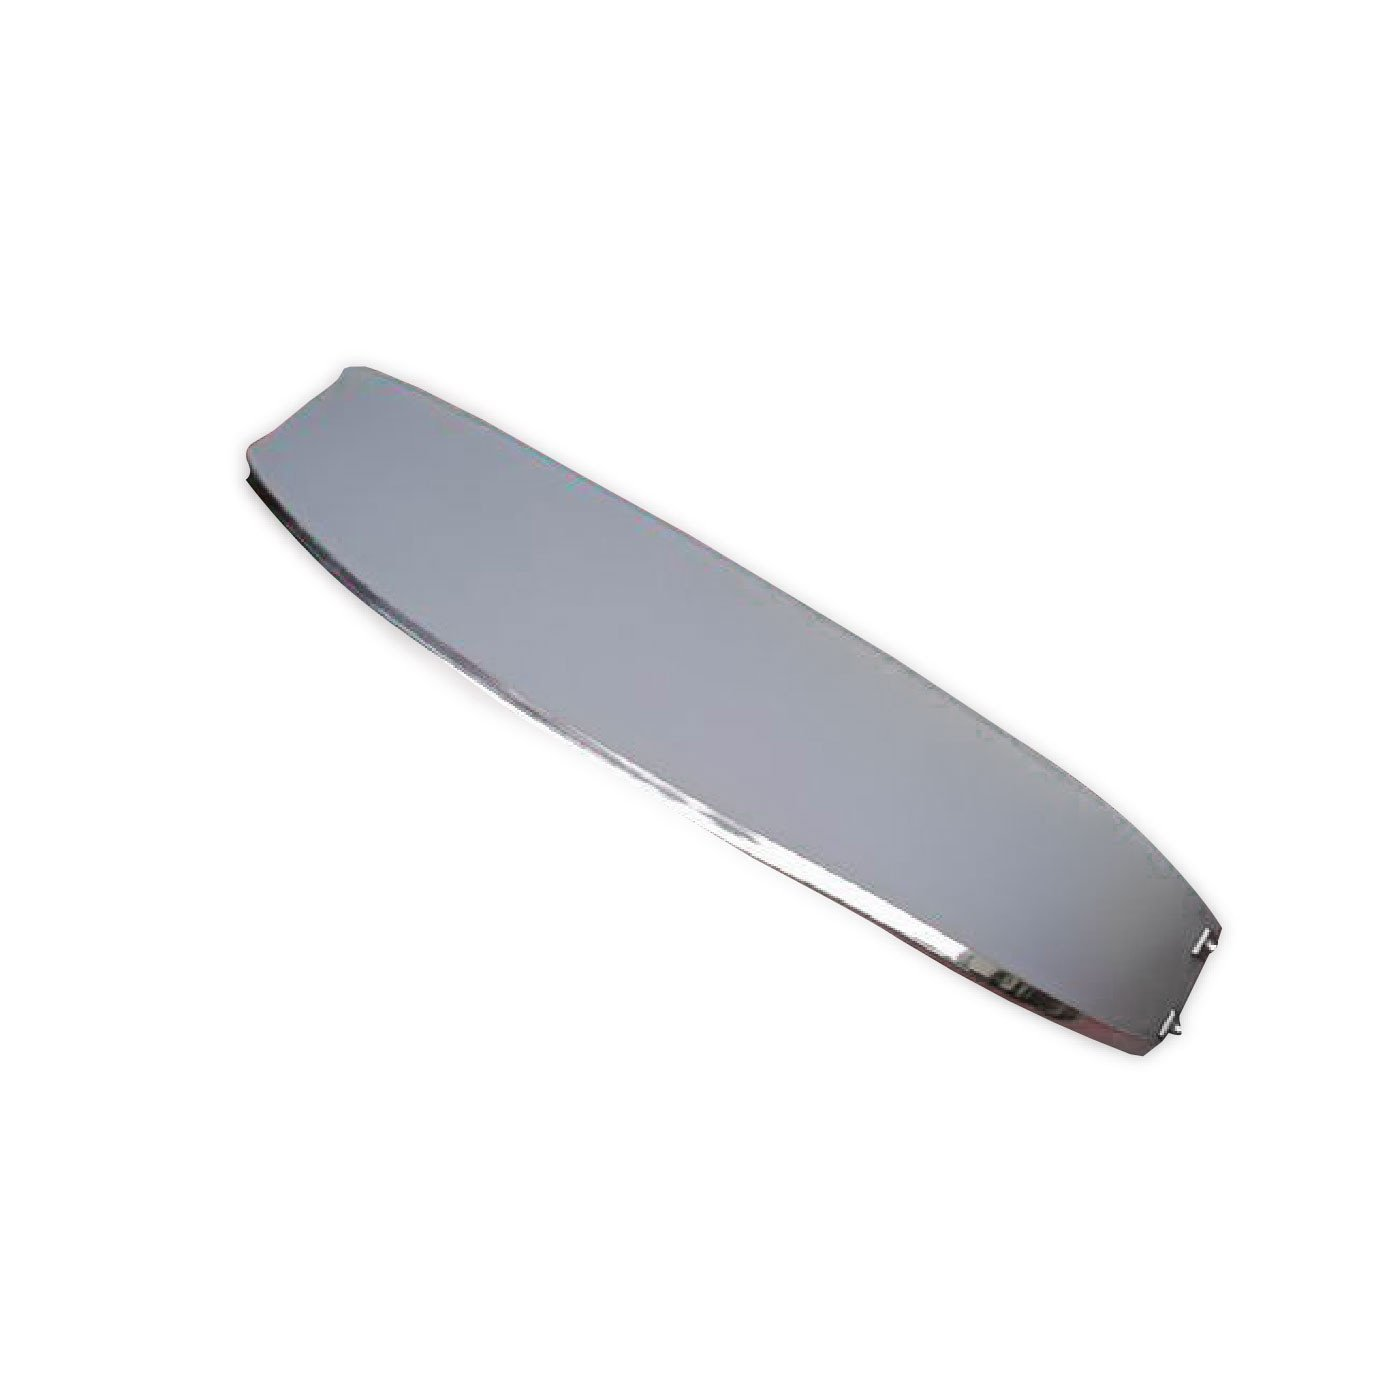 SOLID METAL SUNVISOR FOR TOYOTA HI-LUX RN85/LN106/RN90